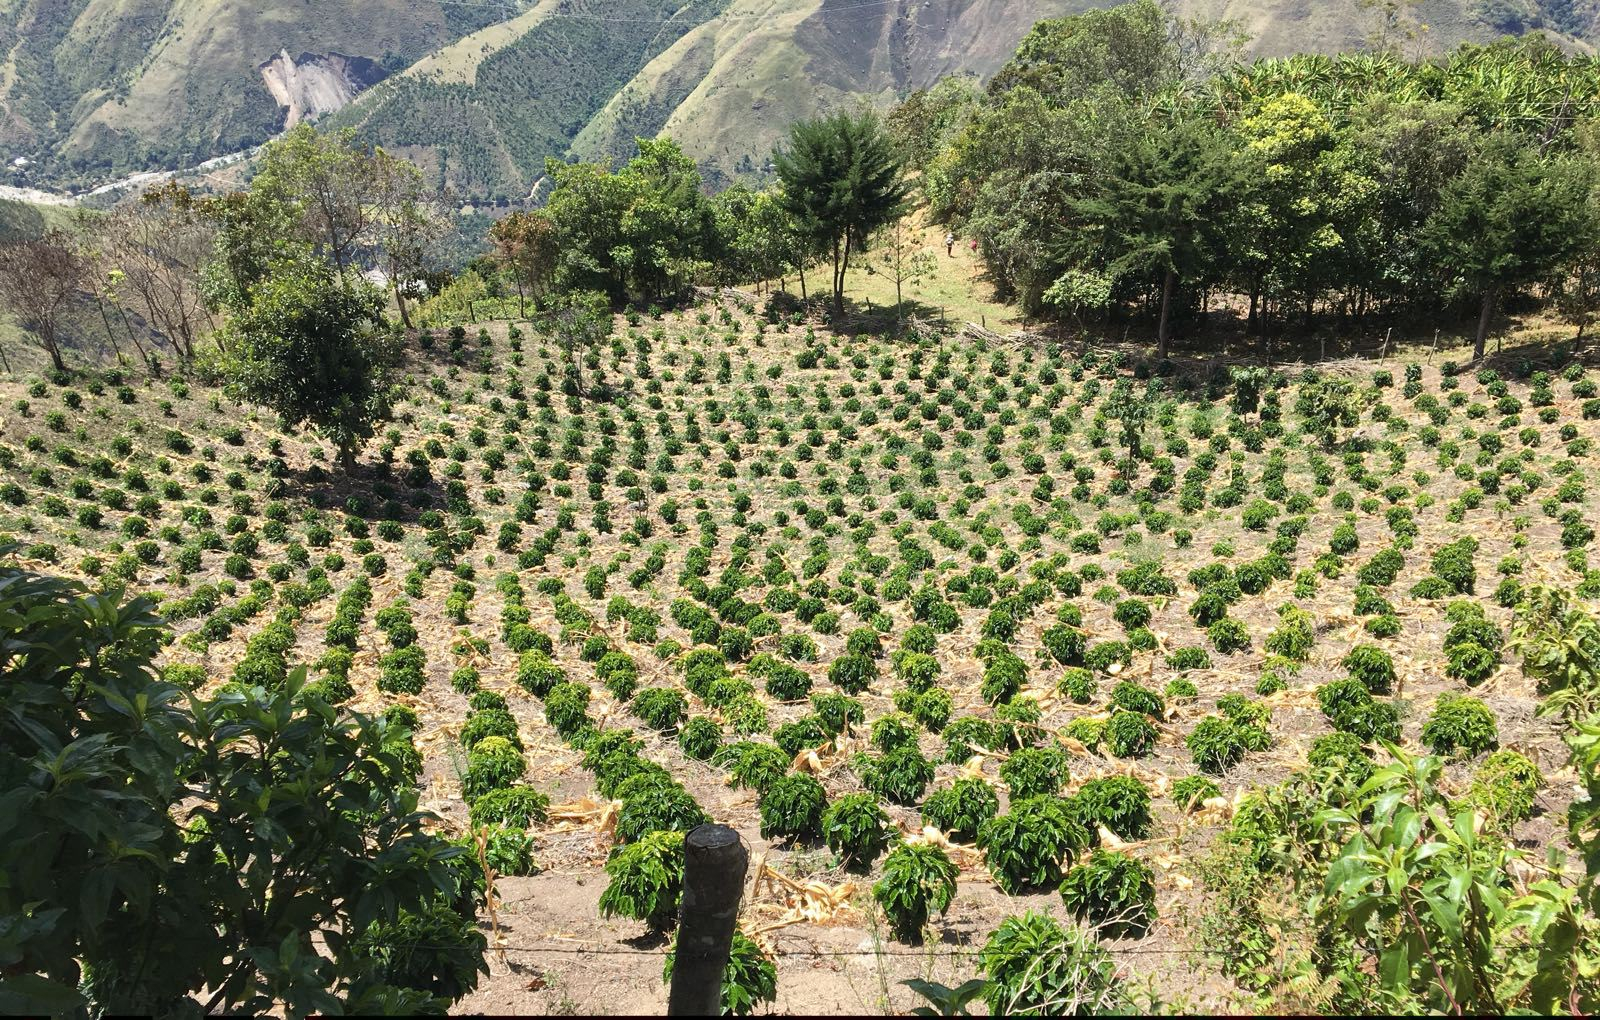 New plantings on Antonio Saavedra's farm, Finca El Placer